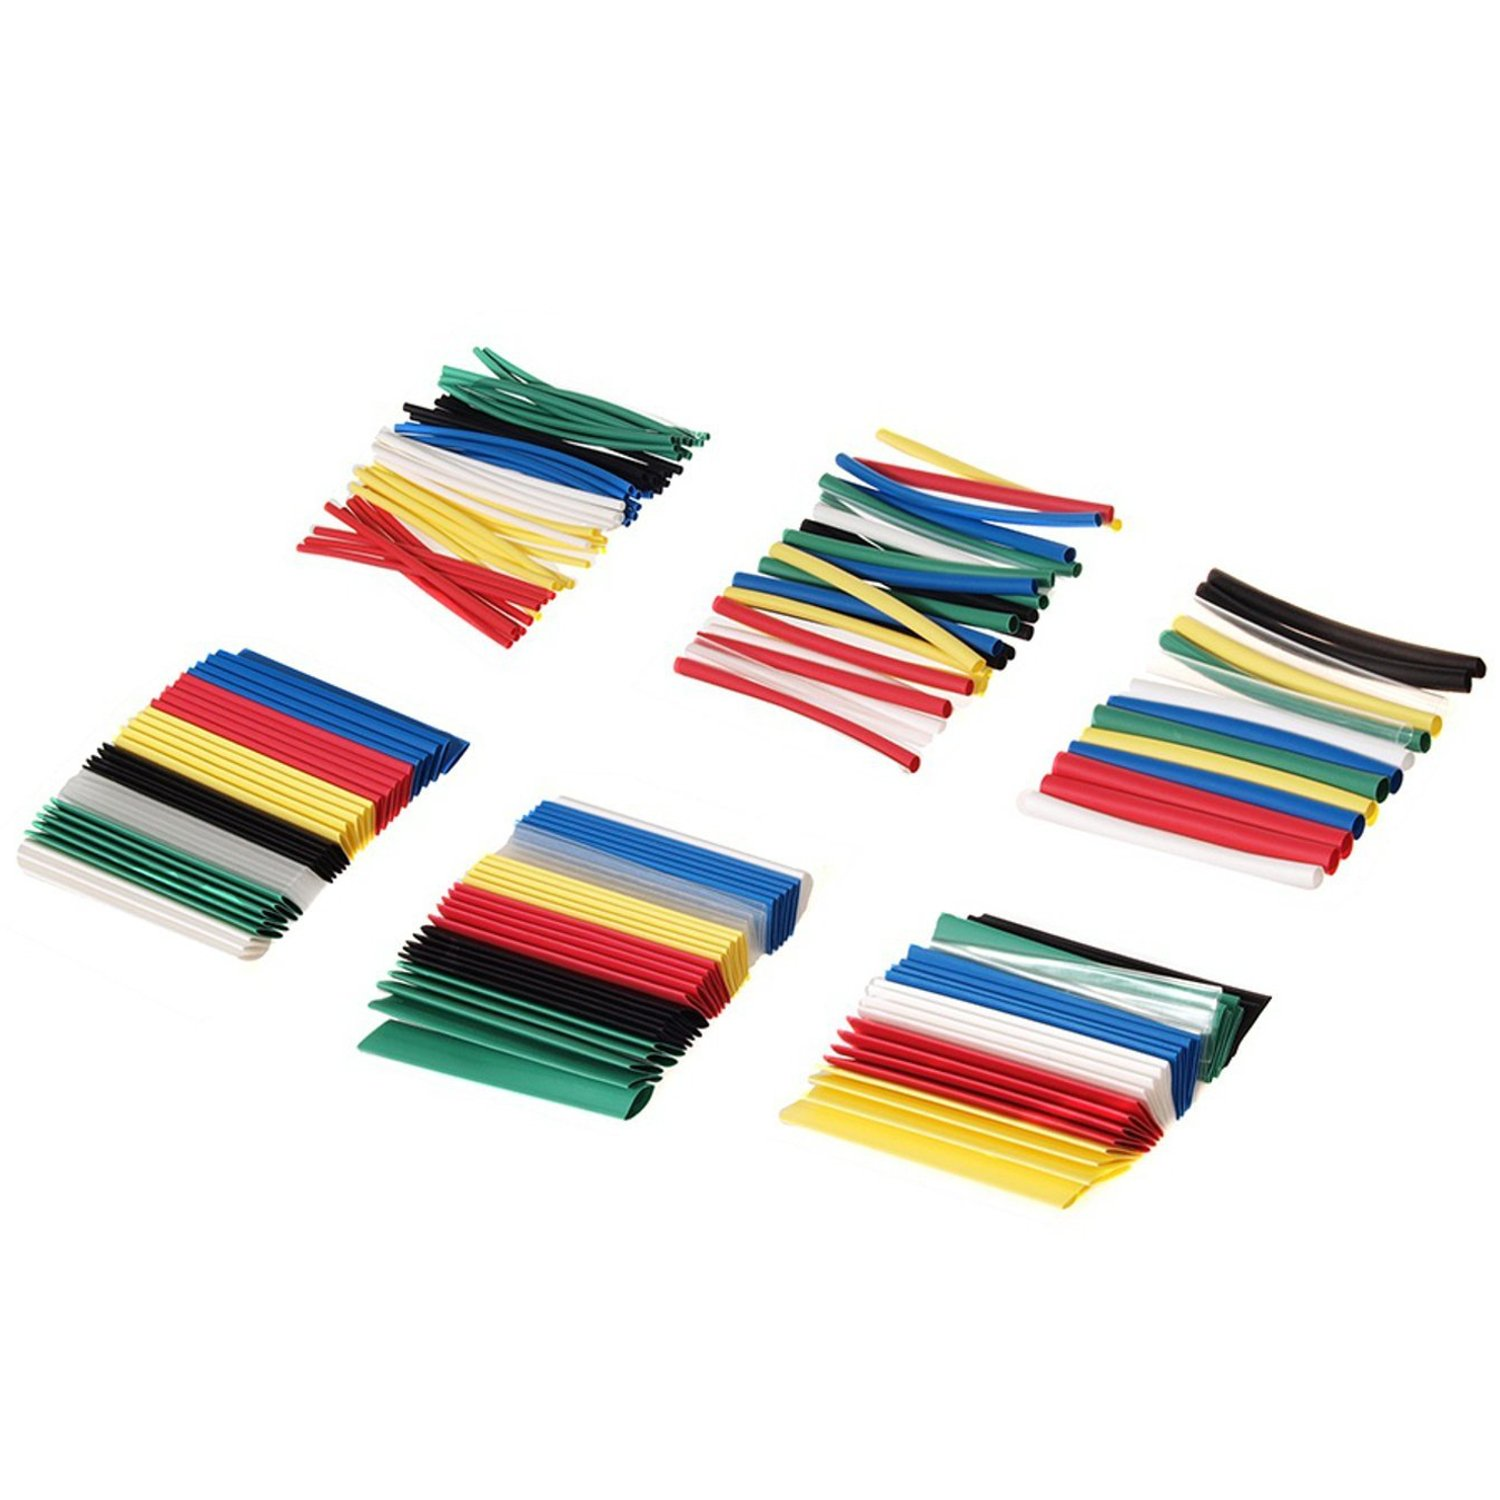 1, 196 pieces 7-colored Maclean MCTV-679 Shrink Tubing Assortment 196 Pieces 7-Color Shrink Tubing Plastic Tube 95mm